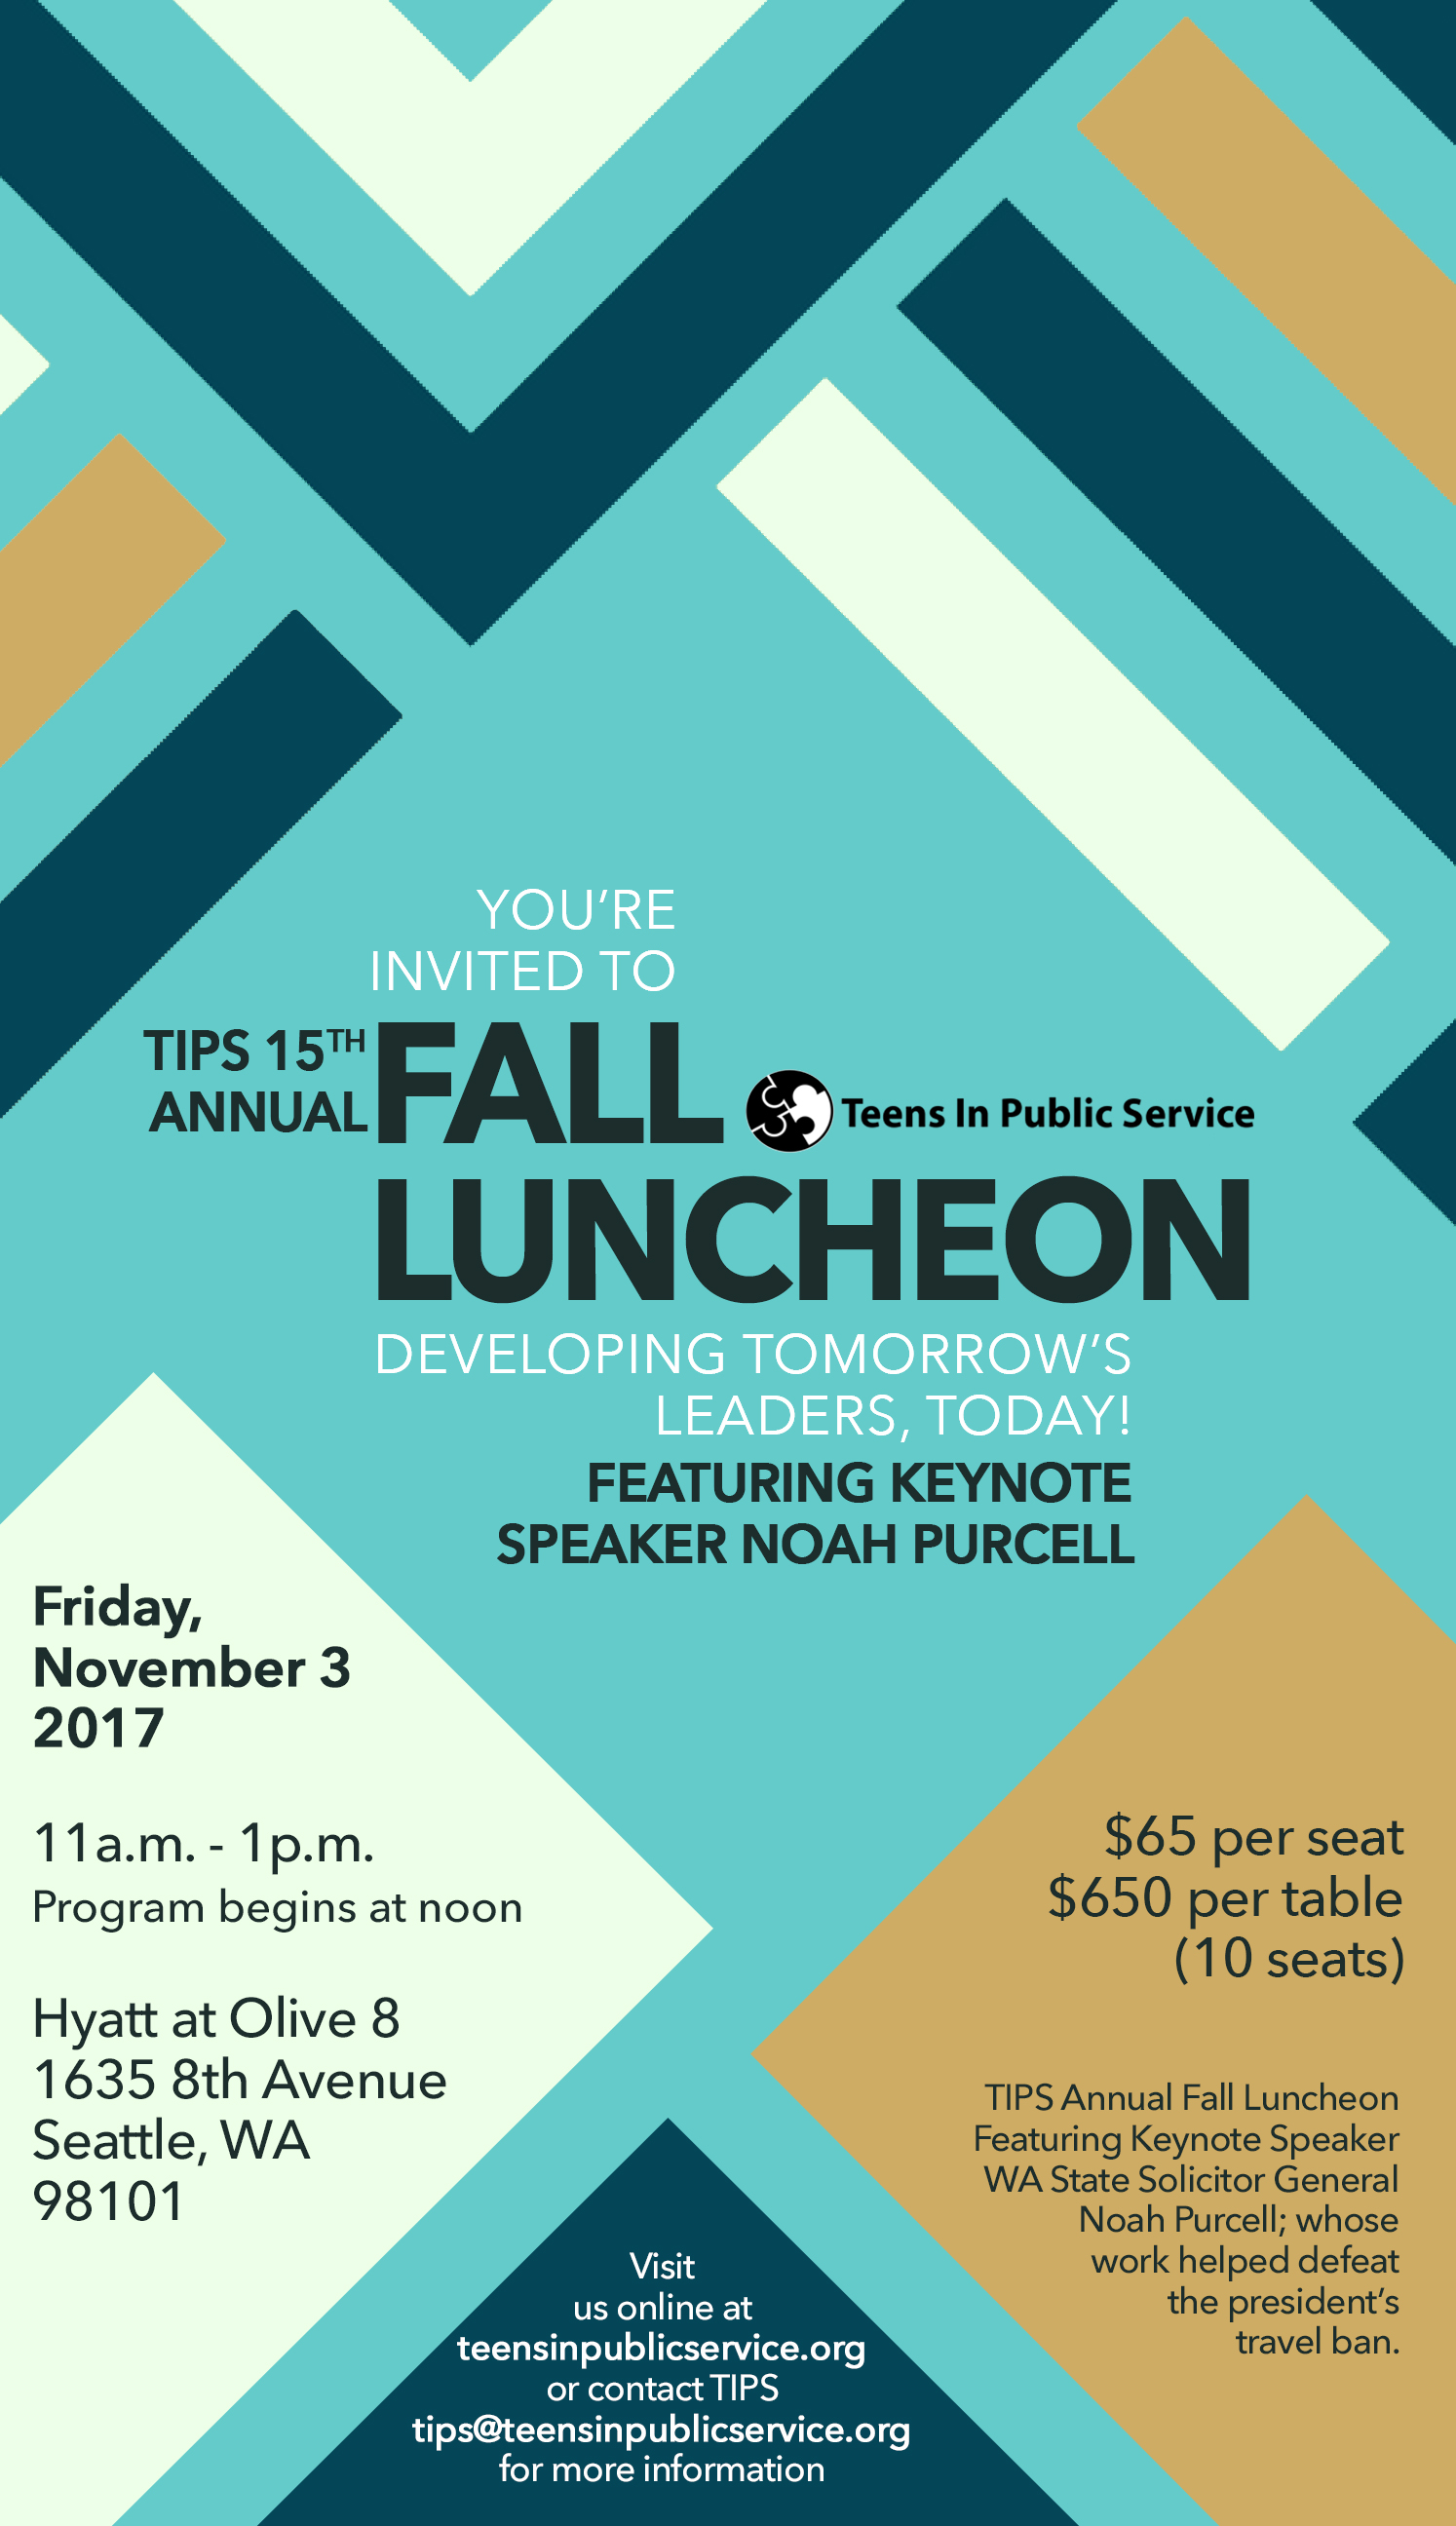 Register for the luncheon